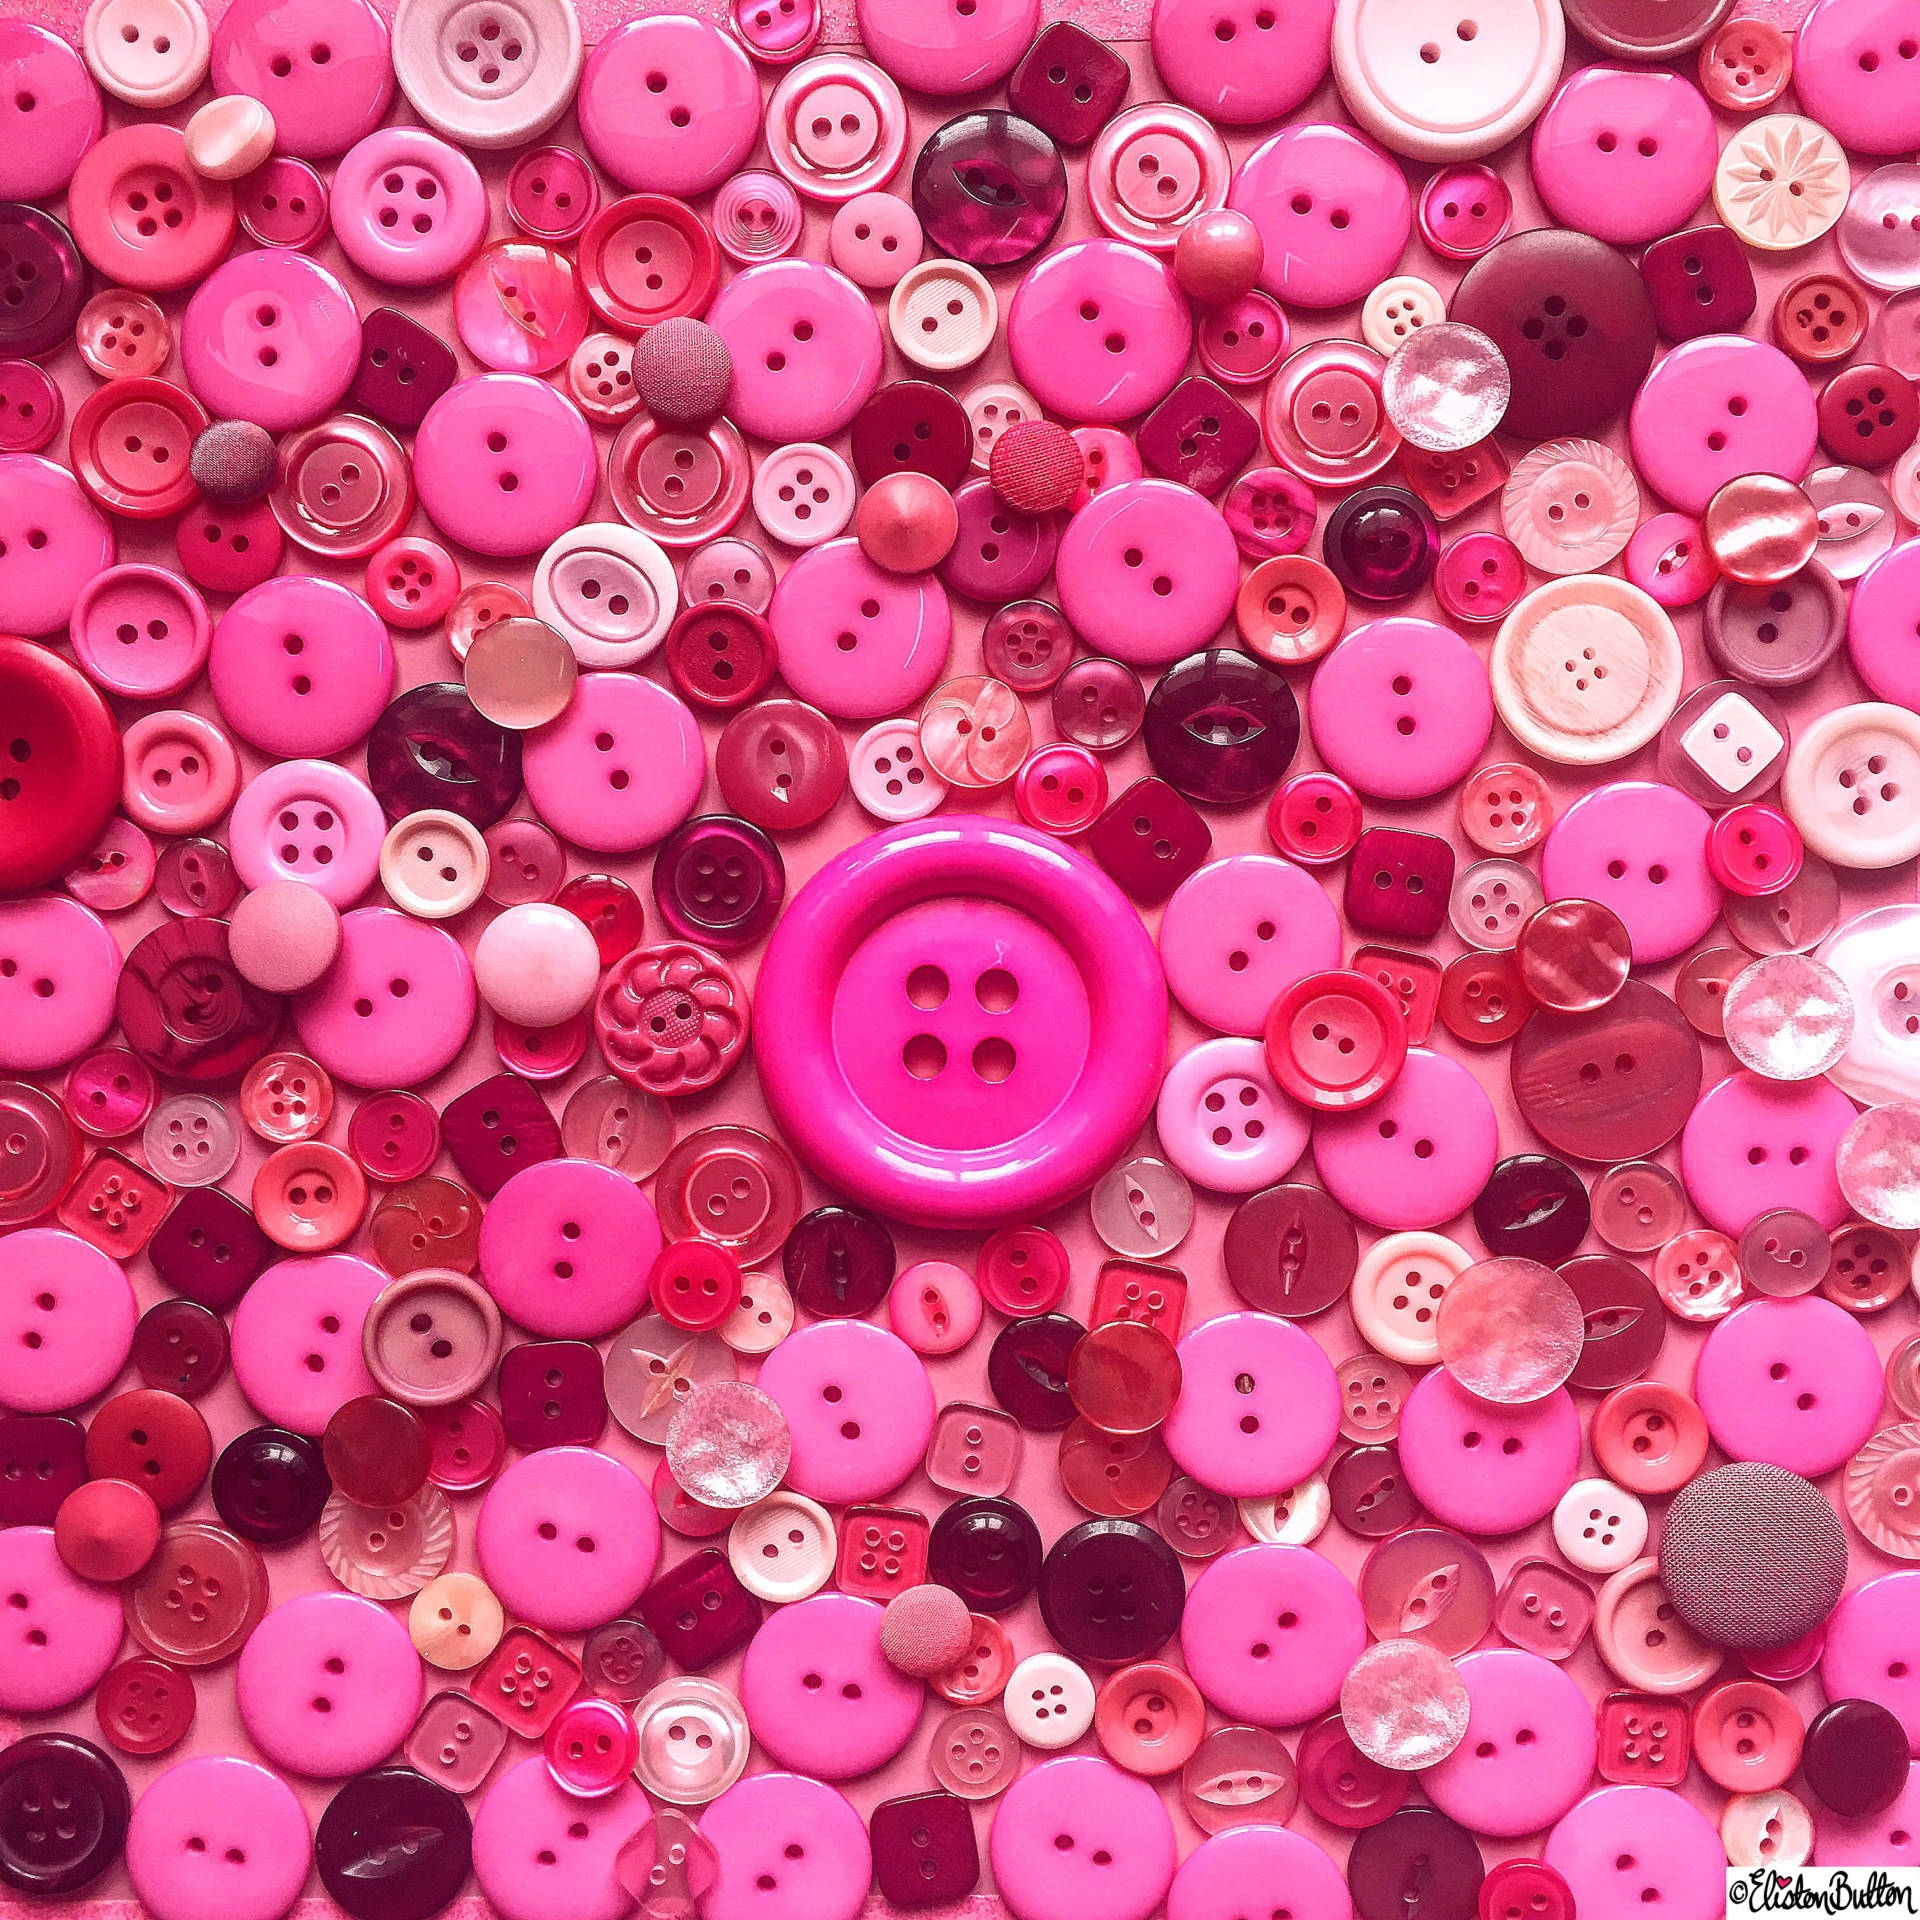 Day 19 - My Fave Colour - Pink Buttons - Photo-a-Day – May 2016 at www.elistonbutton.com - Eliston Button - That Crafty Kid – Art, Design, Craft & Adventure.